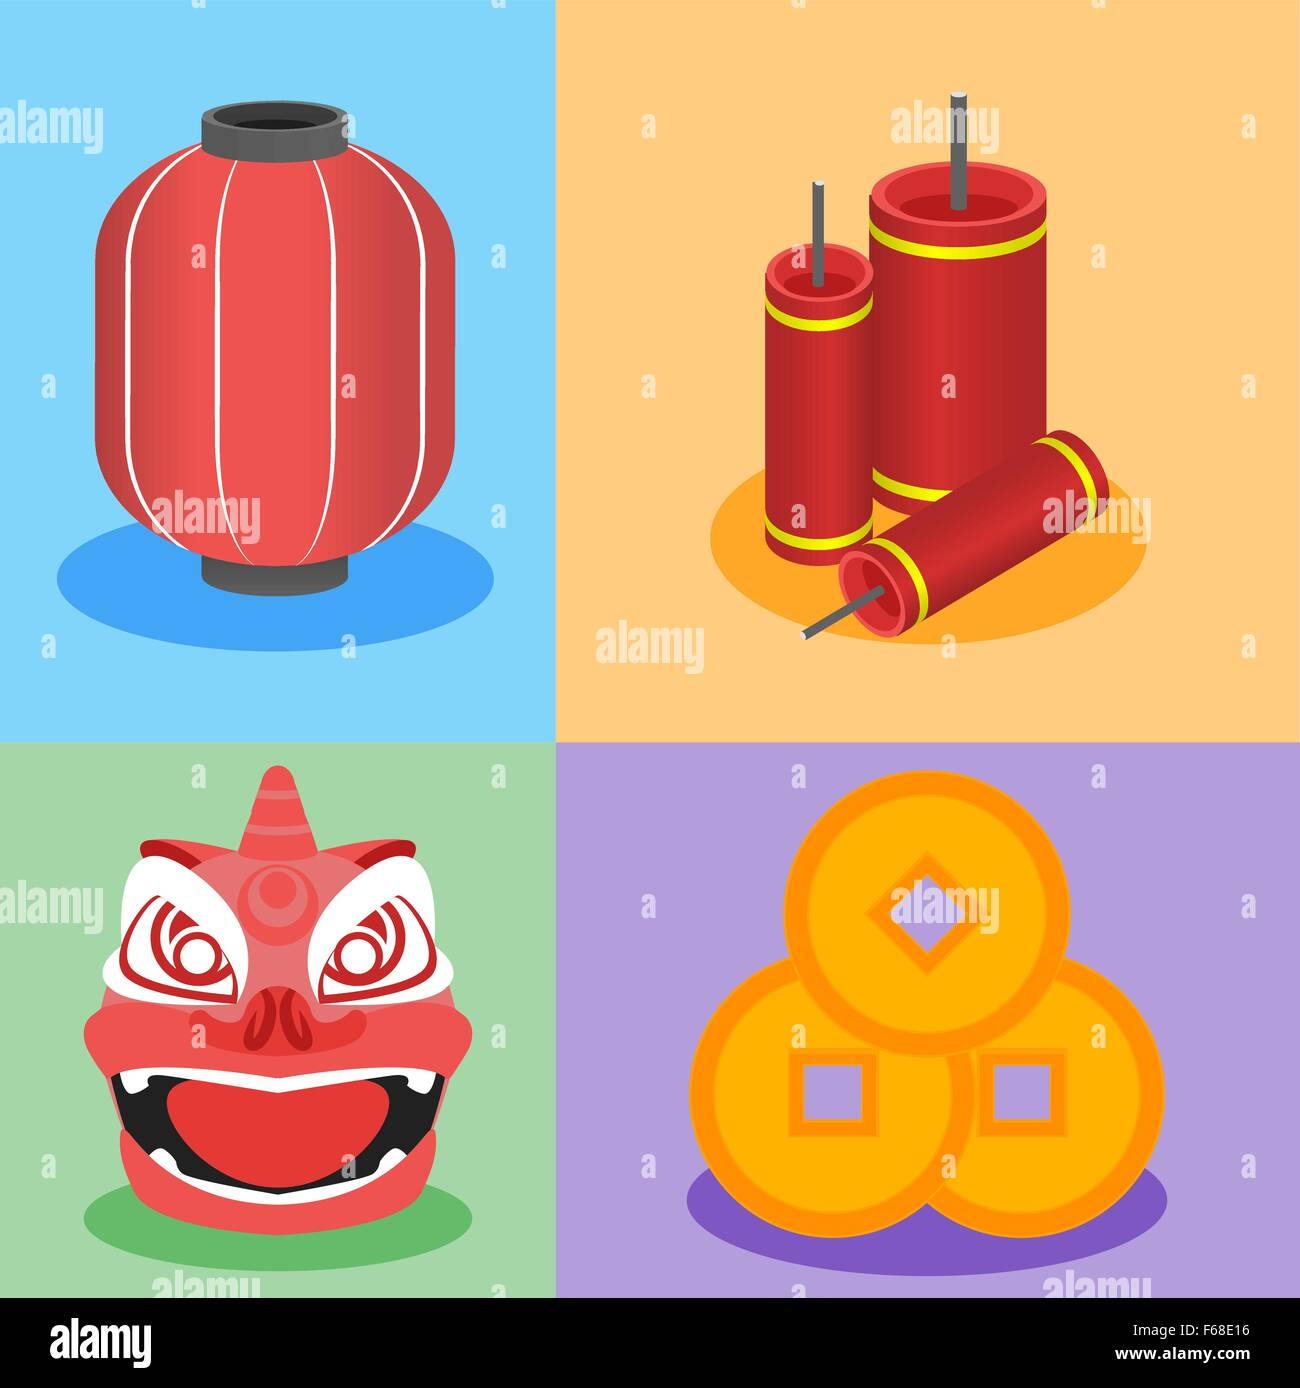 chinese element graphic in flat design style chinese lantern red